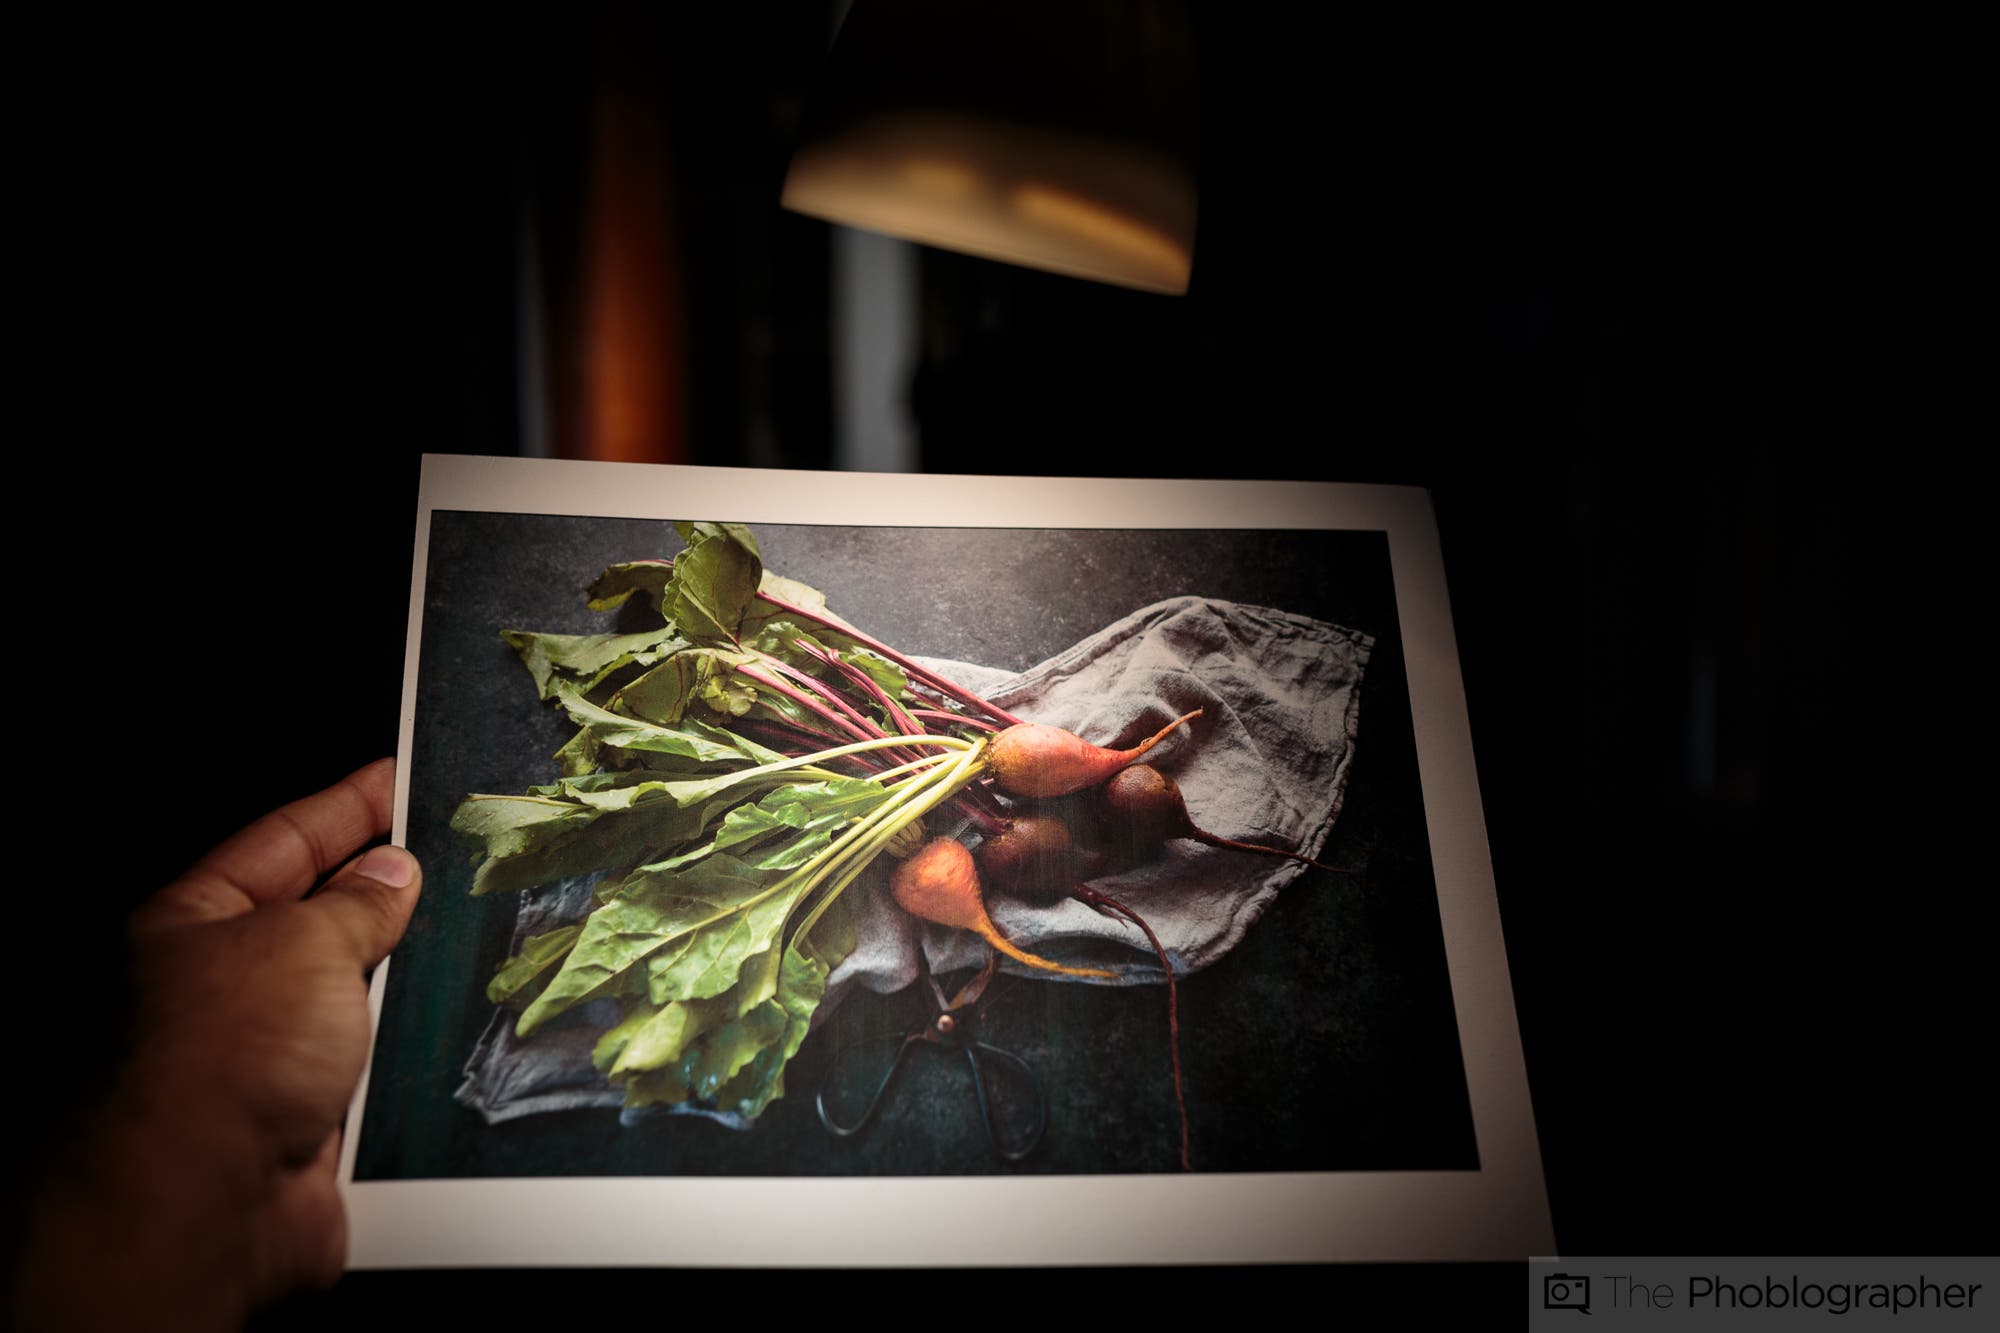 How to Properly Light a Printed Photo in Your Home